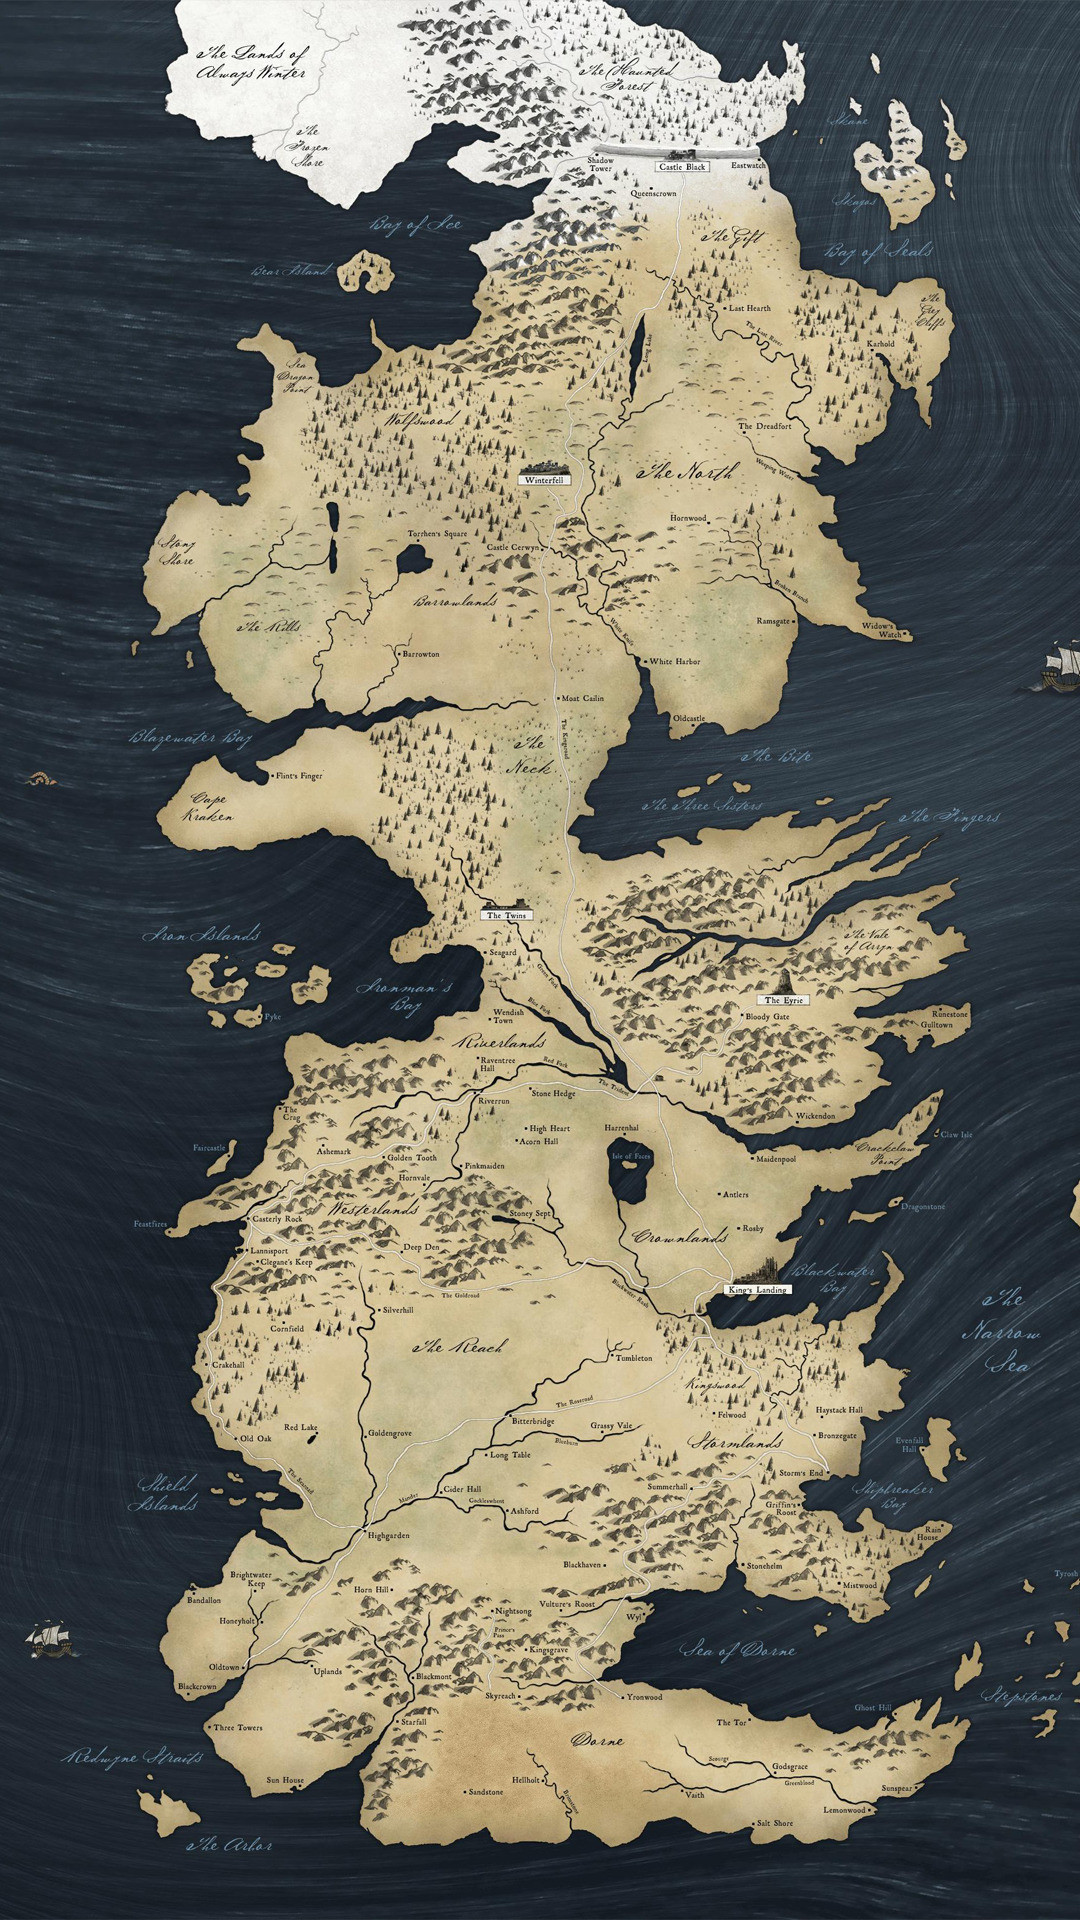 Game of Thrones map Wallpaper